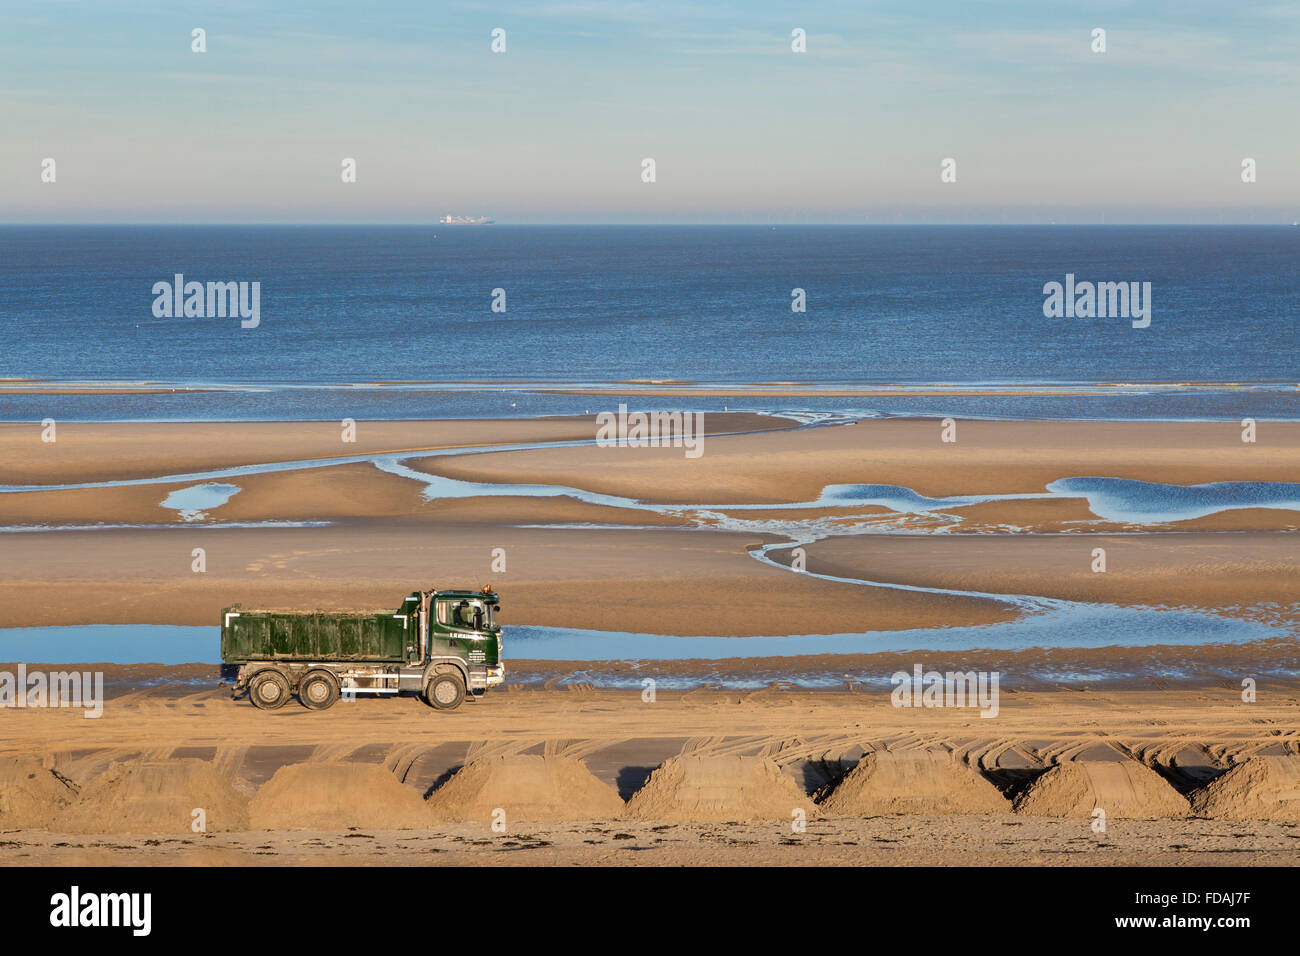 Truck at work to raise the beach along the North Sea coast at Blankenberge, Belgium - Stock Image